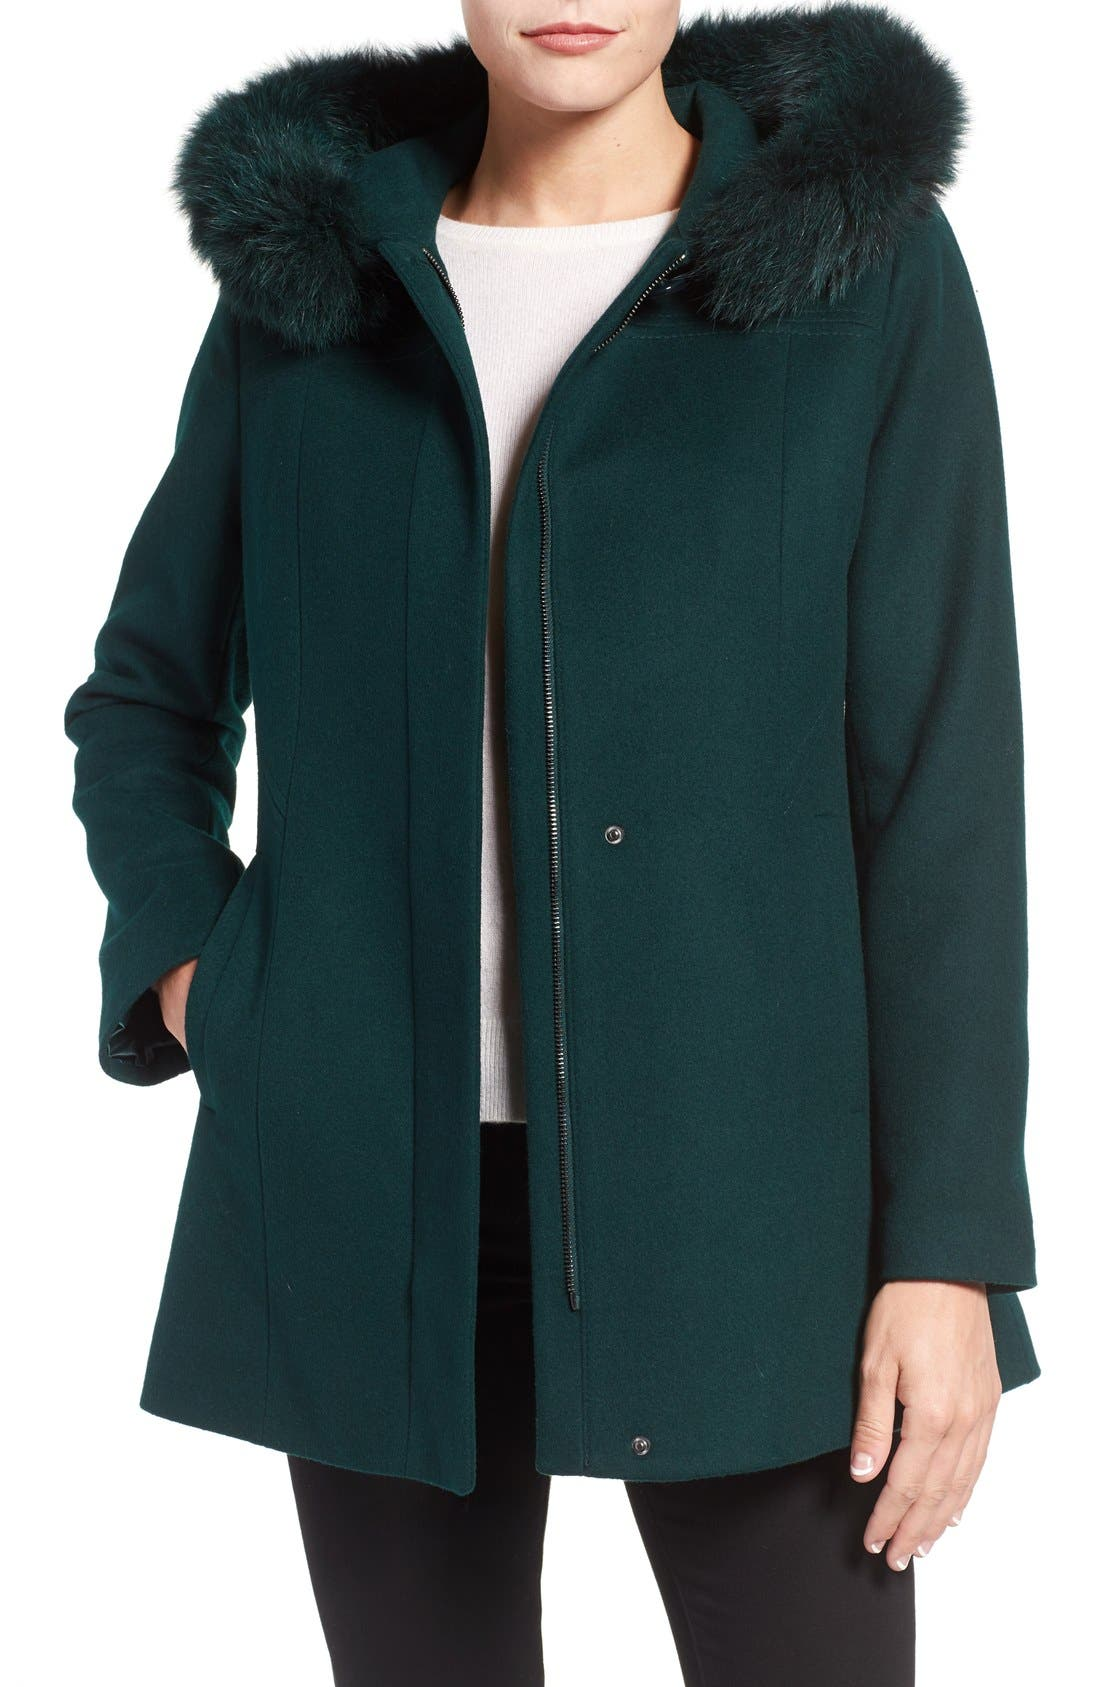 Alternate Image 1 Selected - Sachi Wool Blend Coat with Genuine Fox Fur Trim (Regular & Petite)